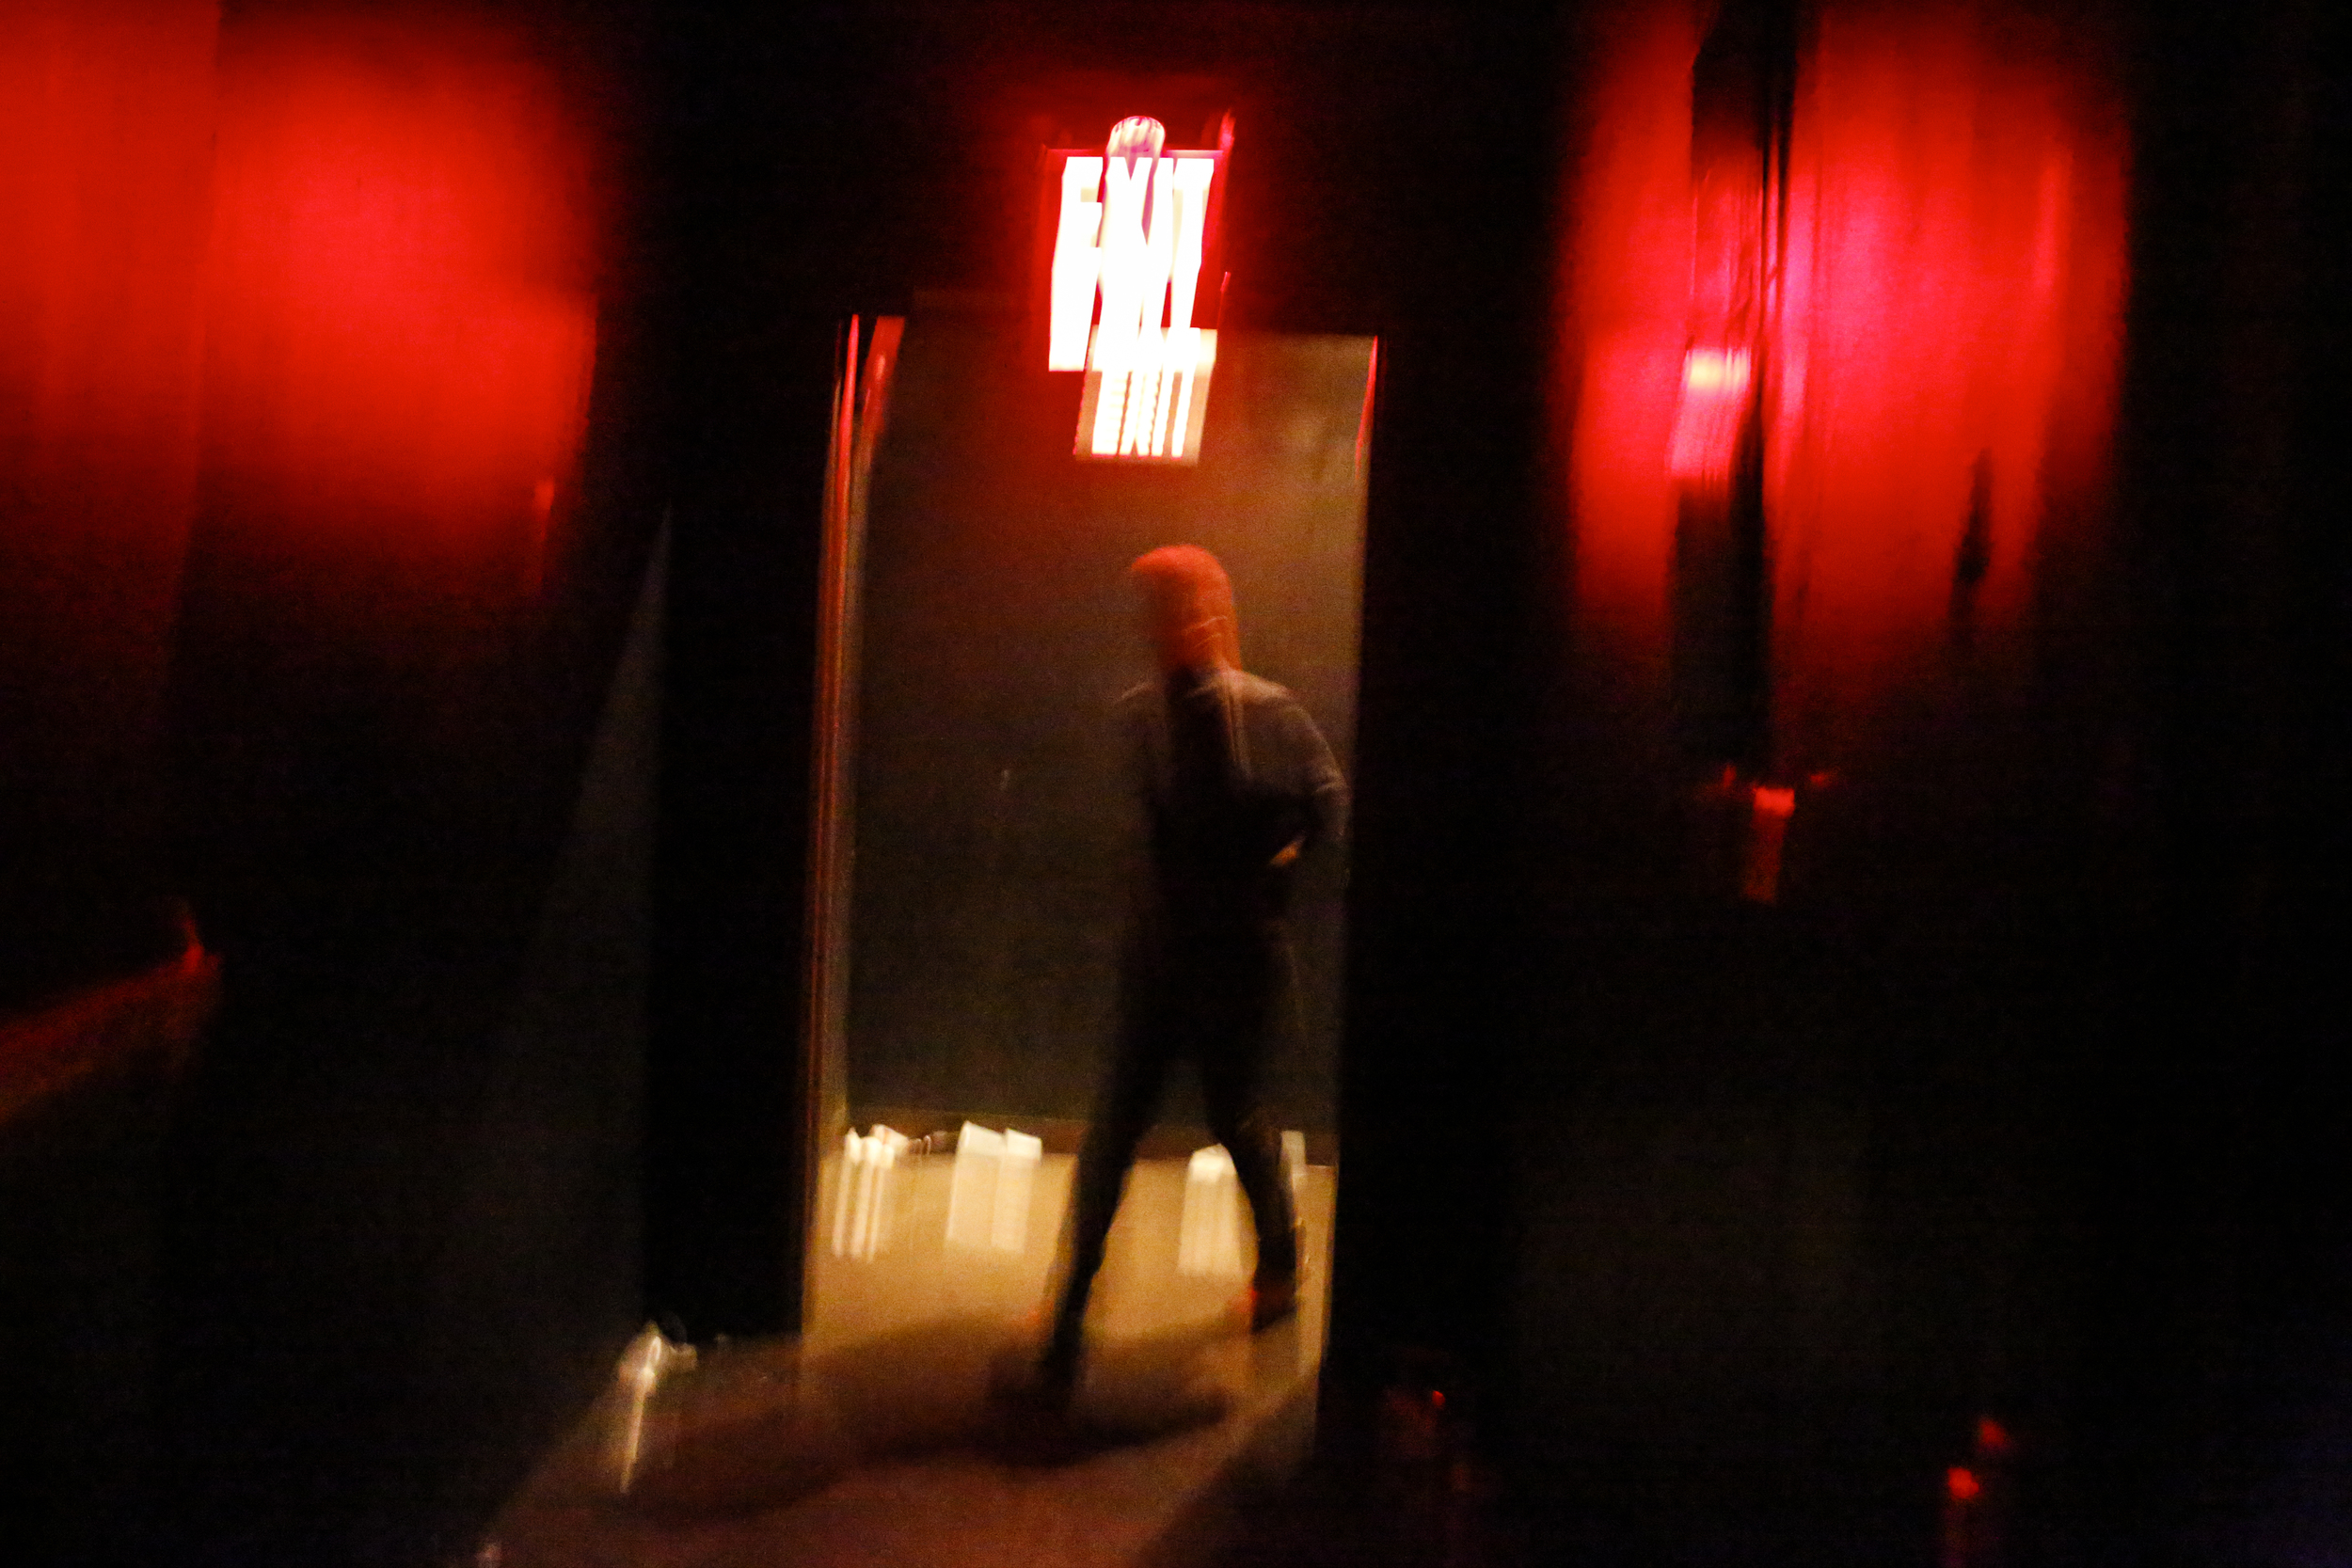 A women walks into one of two dance rooms at a club on new years in Brooklyn, New York.